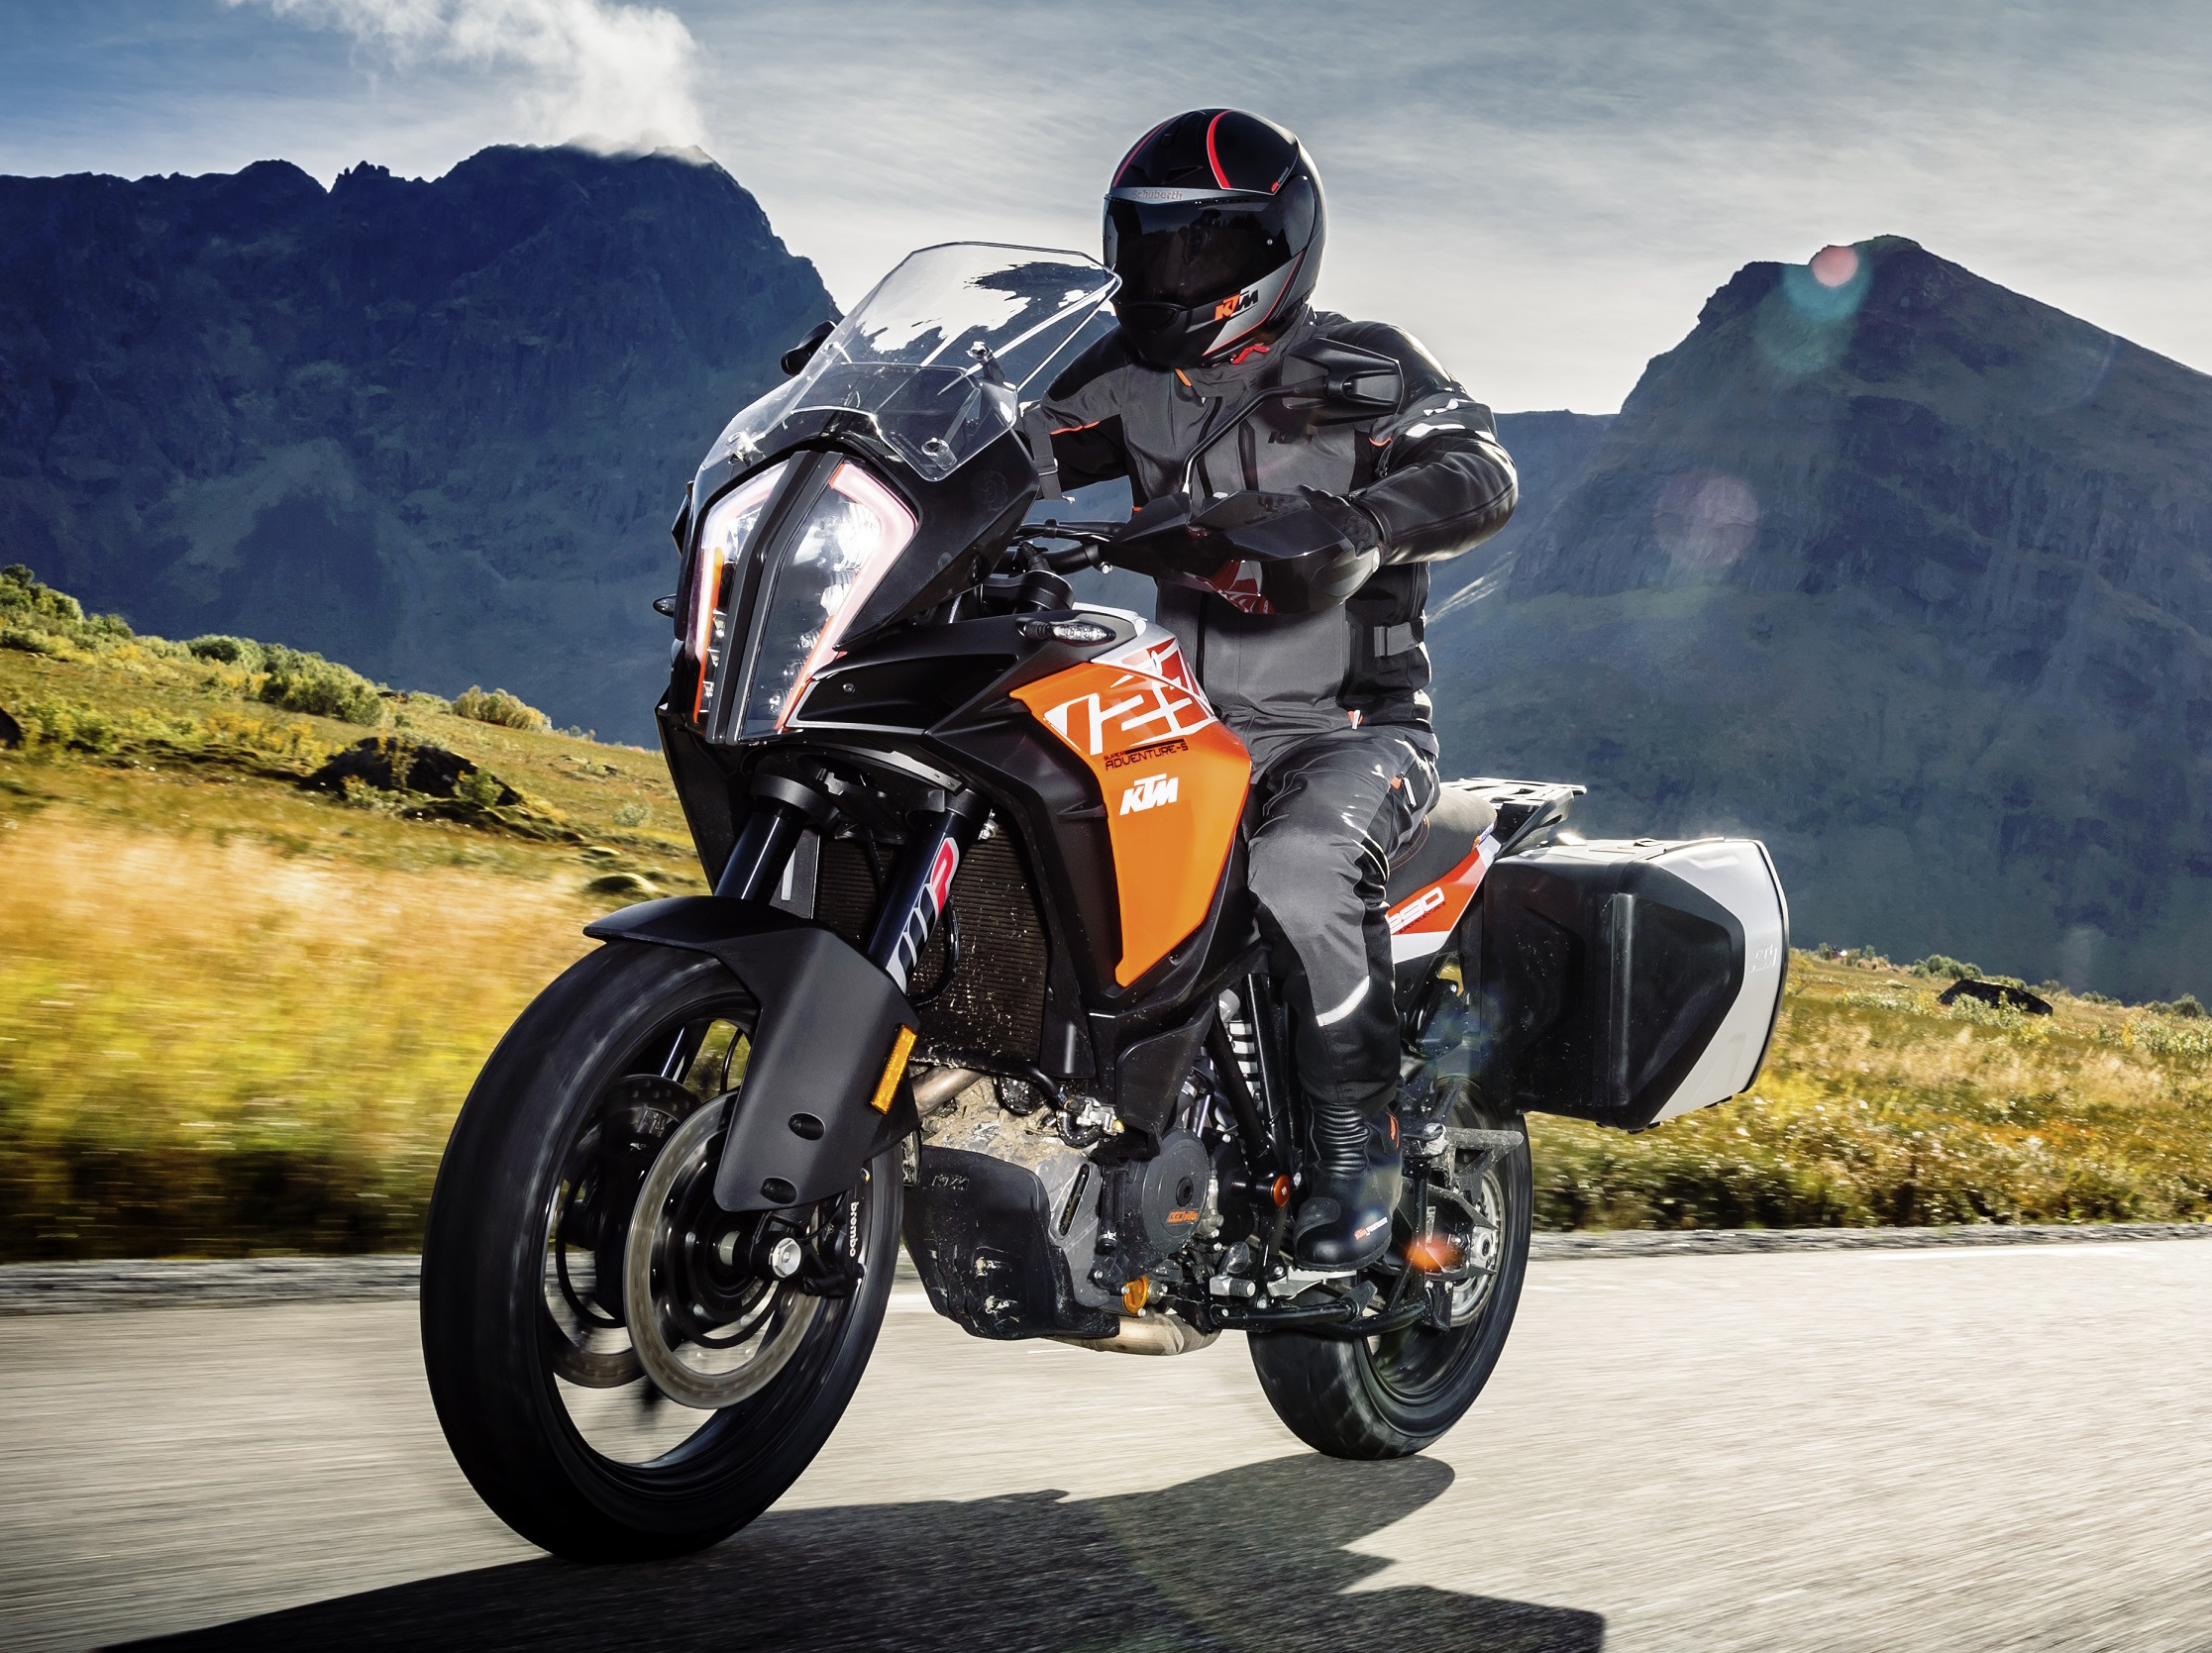 2017 ktm adventure motorcycle range revamped new 1090 and 1290 enduros replace the 1050 and 1190. Black Bedroom Furniture Sets. Home Design Ideas